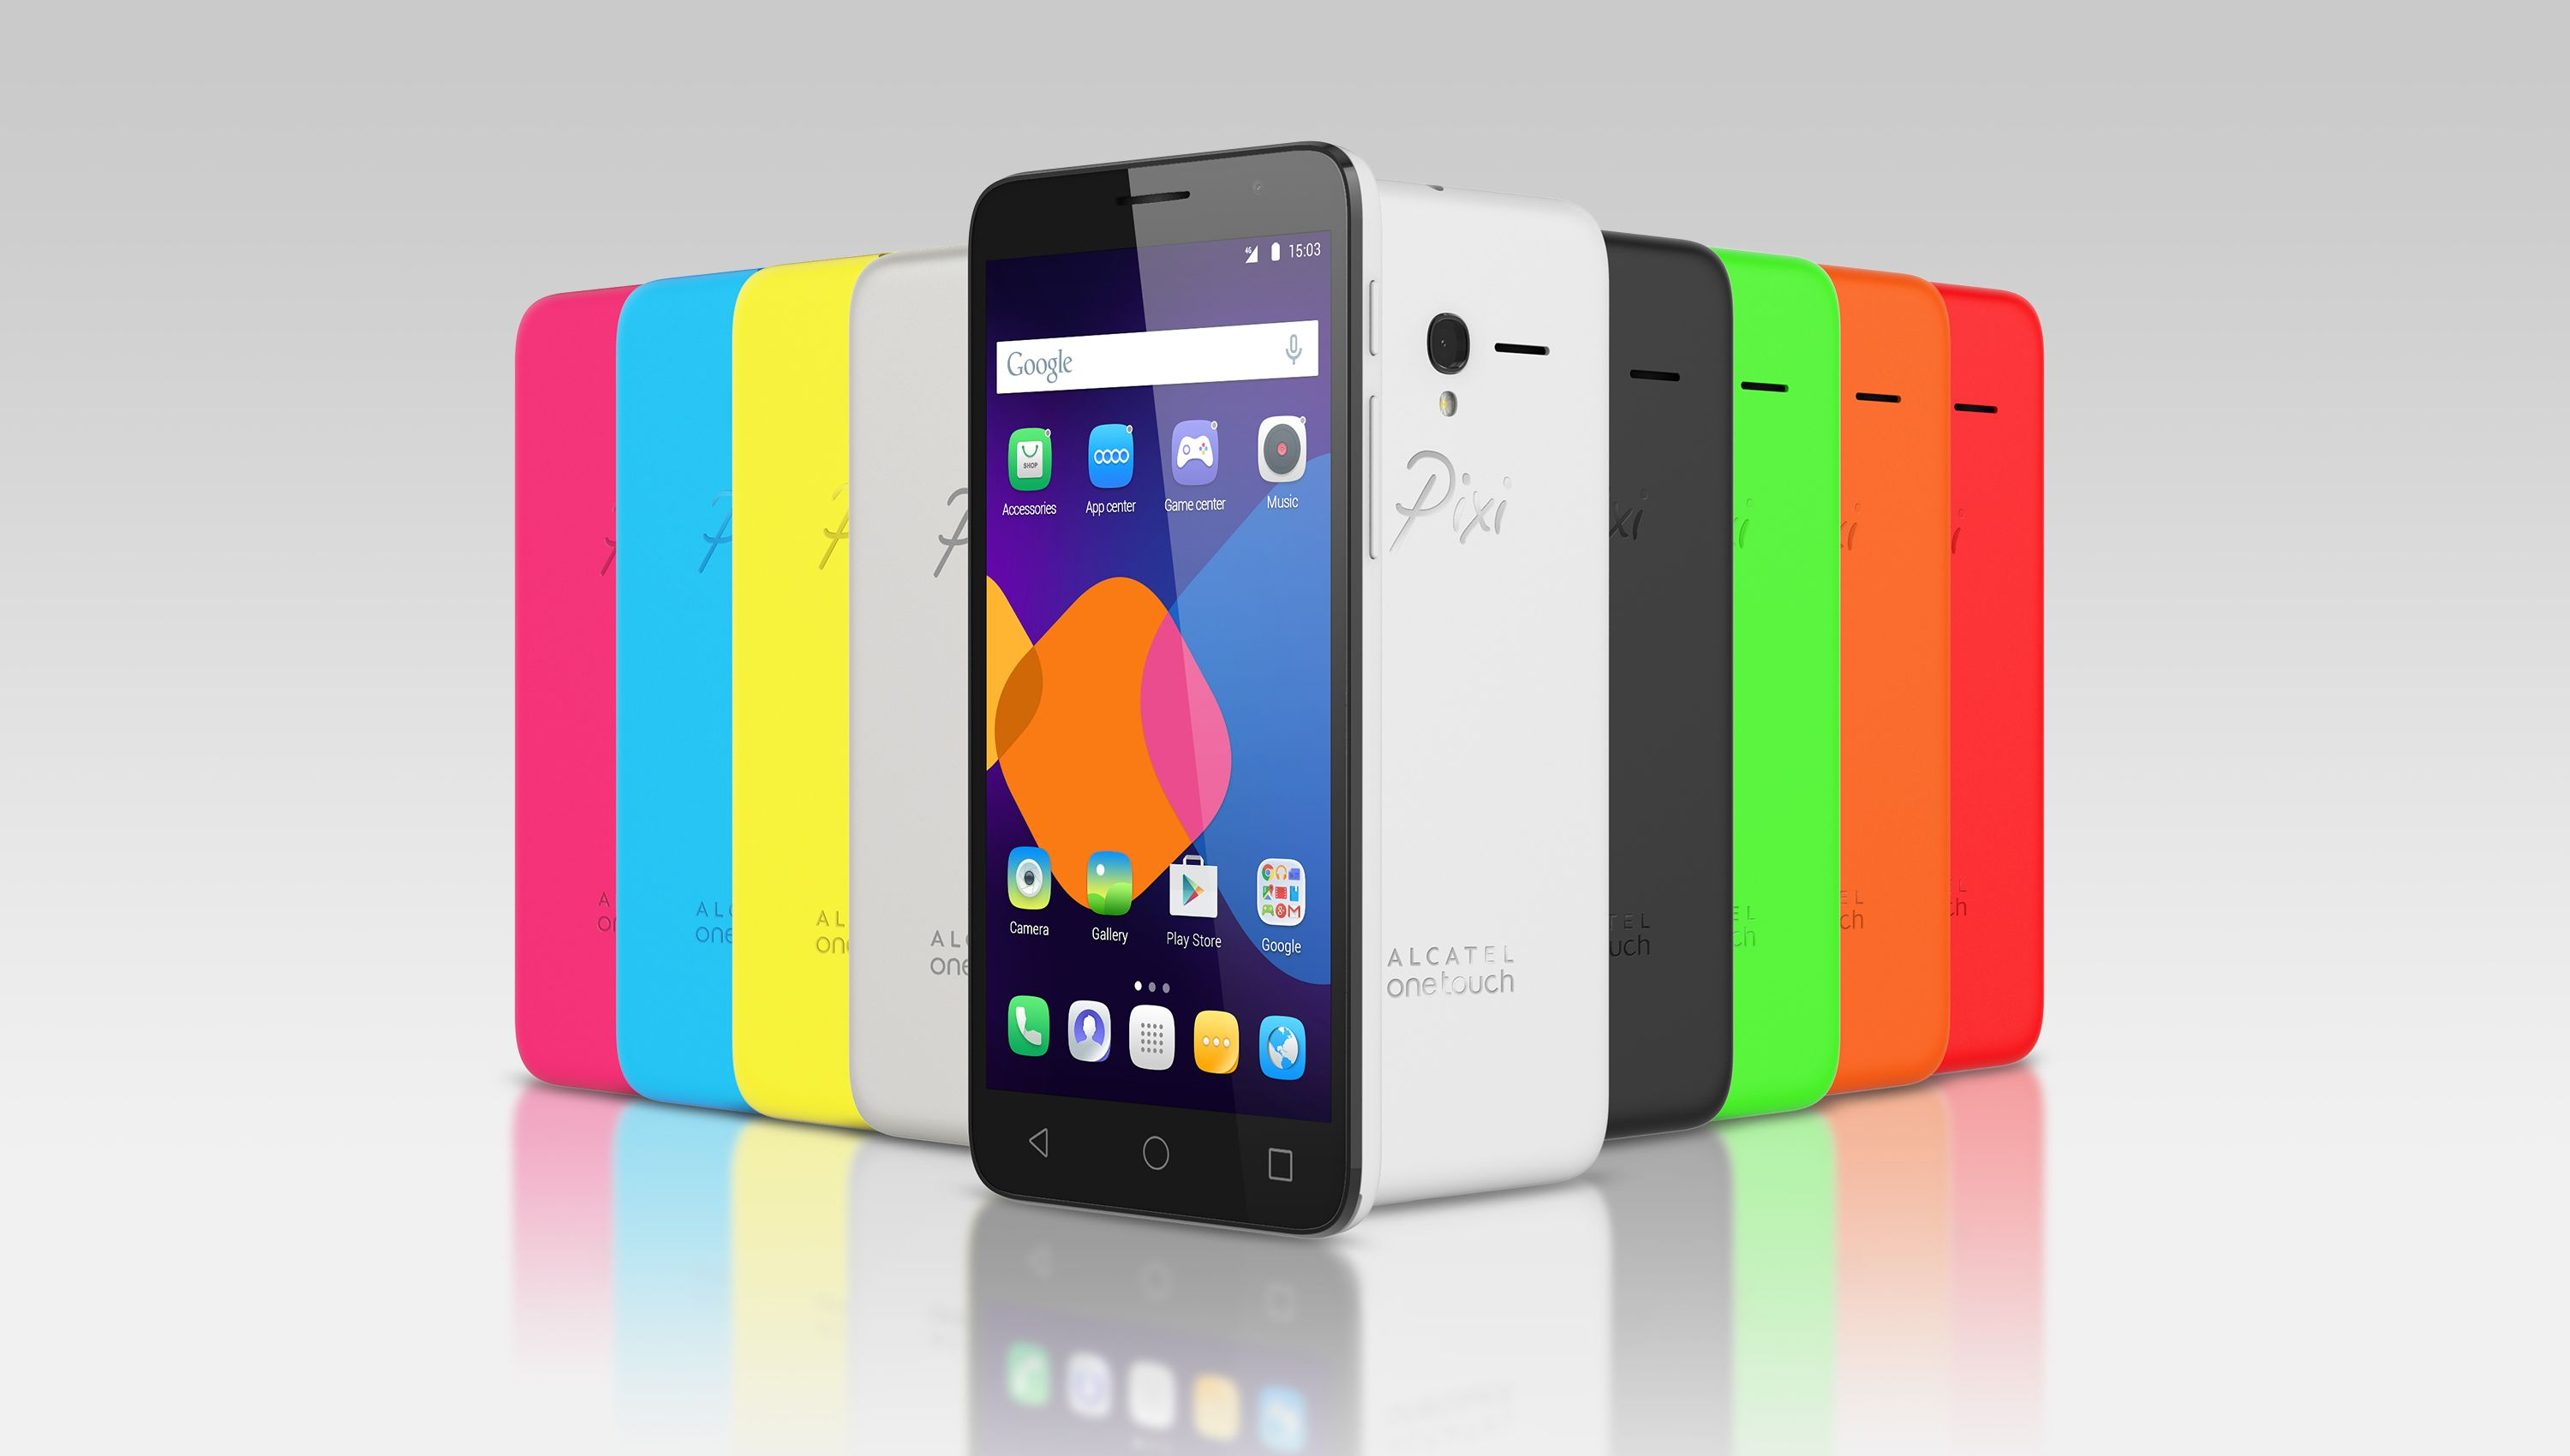 The Alcatel eTouch PIXI 3 is an Android smartphone sporting a screen quad core processor of RAM